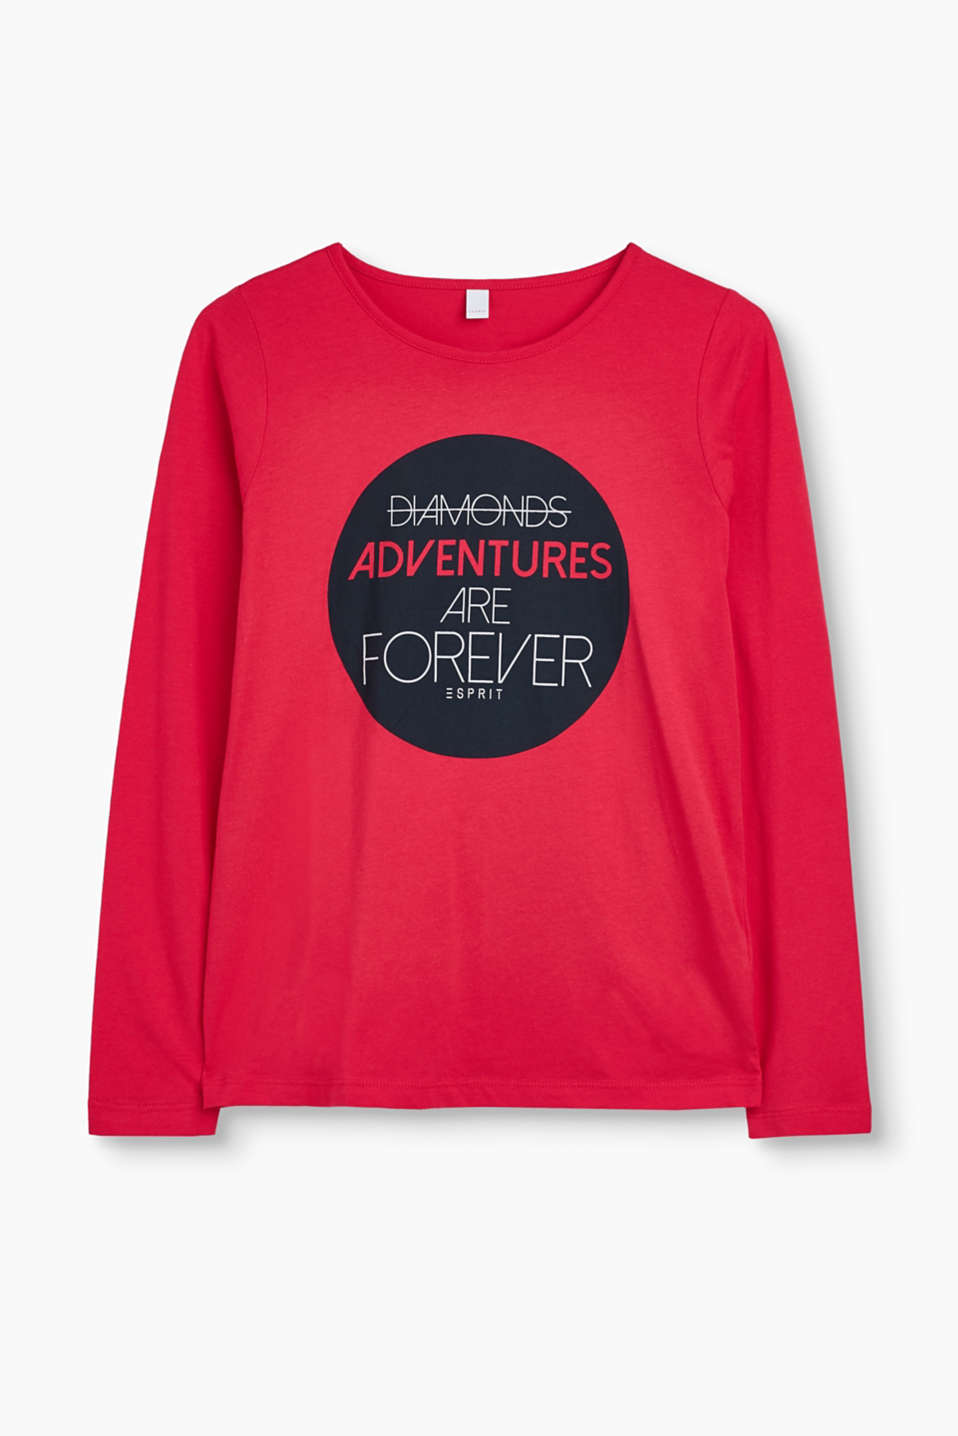 If you do not feel like talking then make a statement with this long sleeve top in soft cotton jersey!